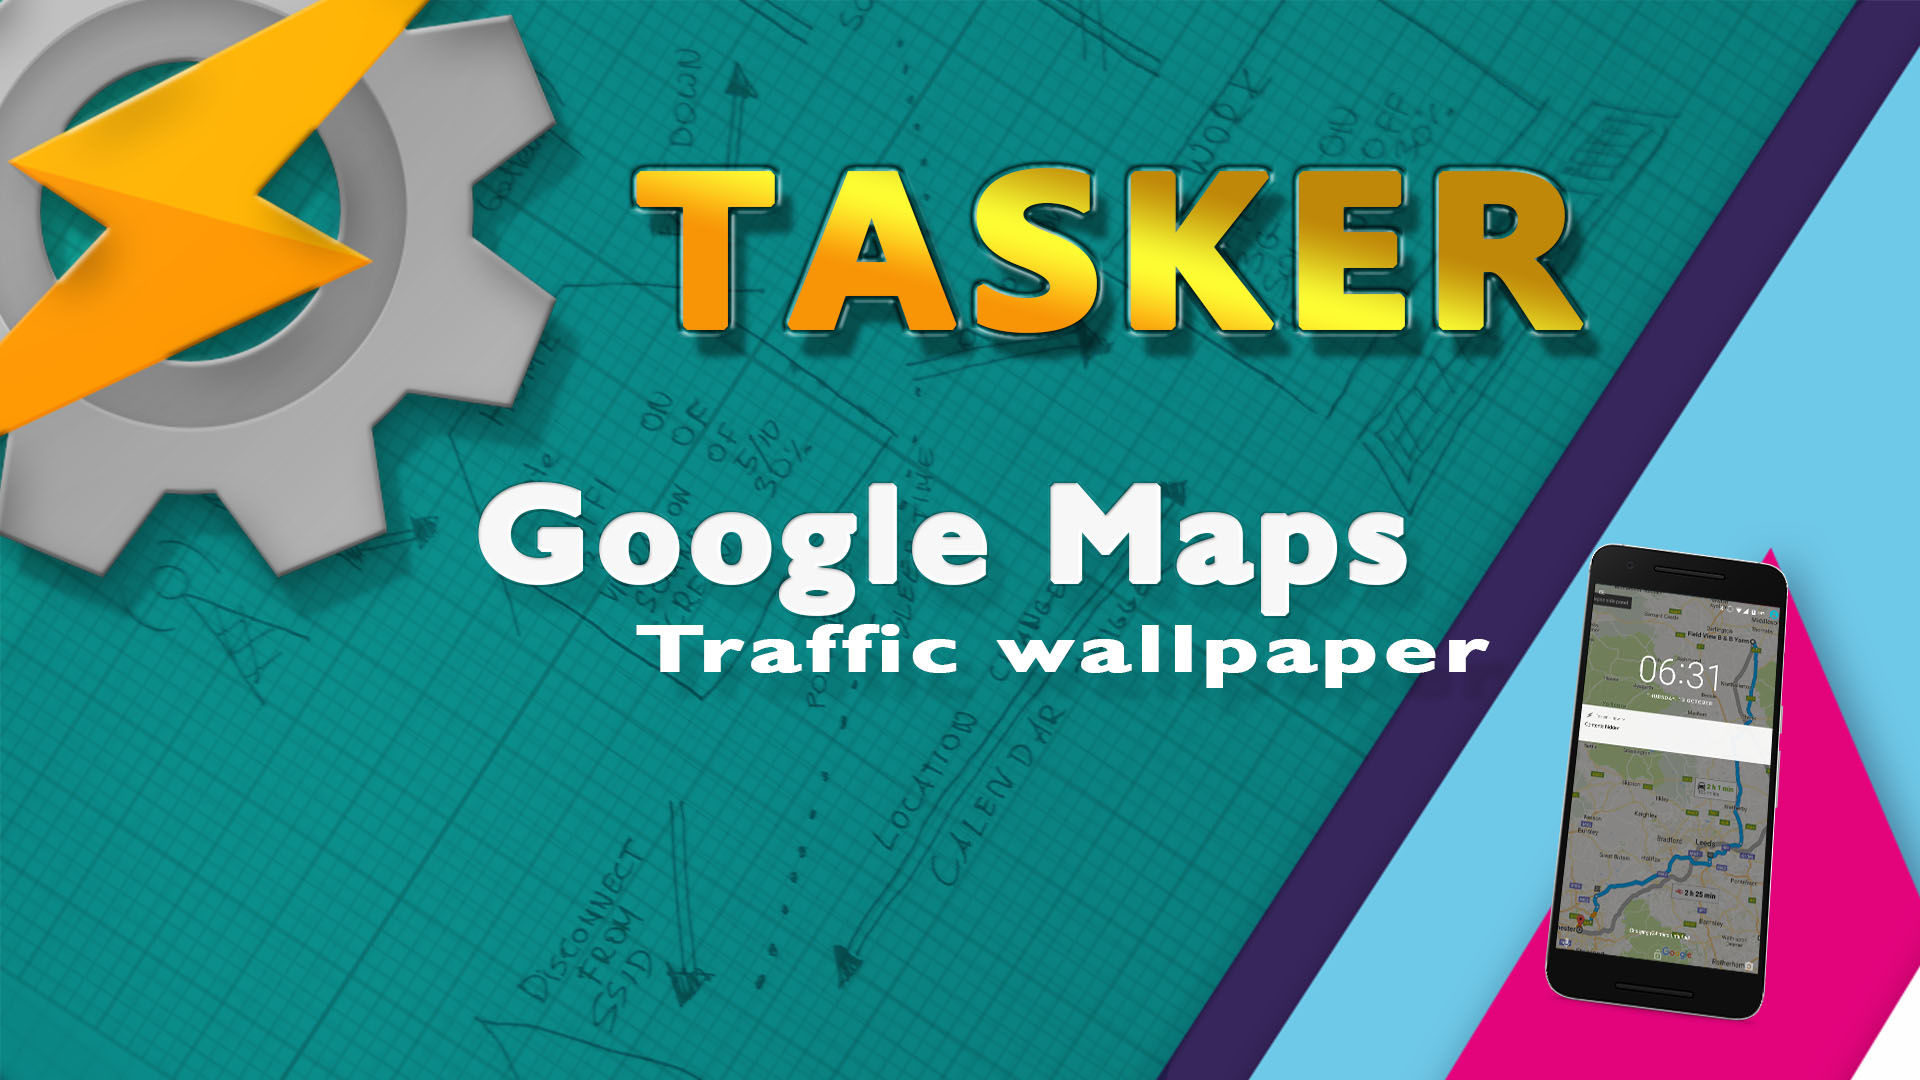 Google Maps traffic wallpaper